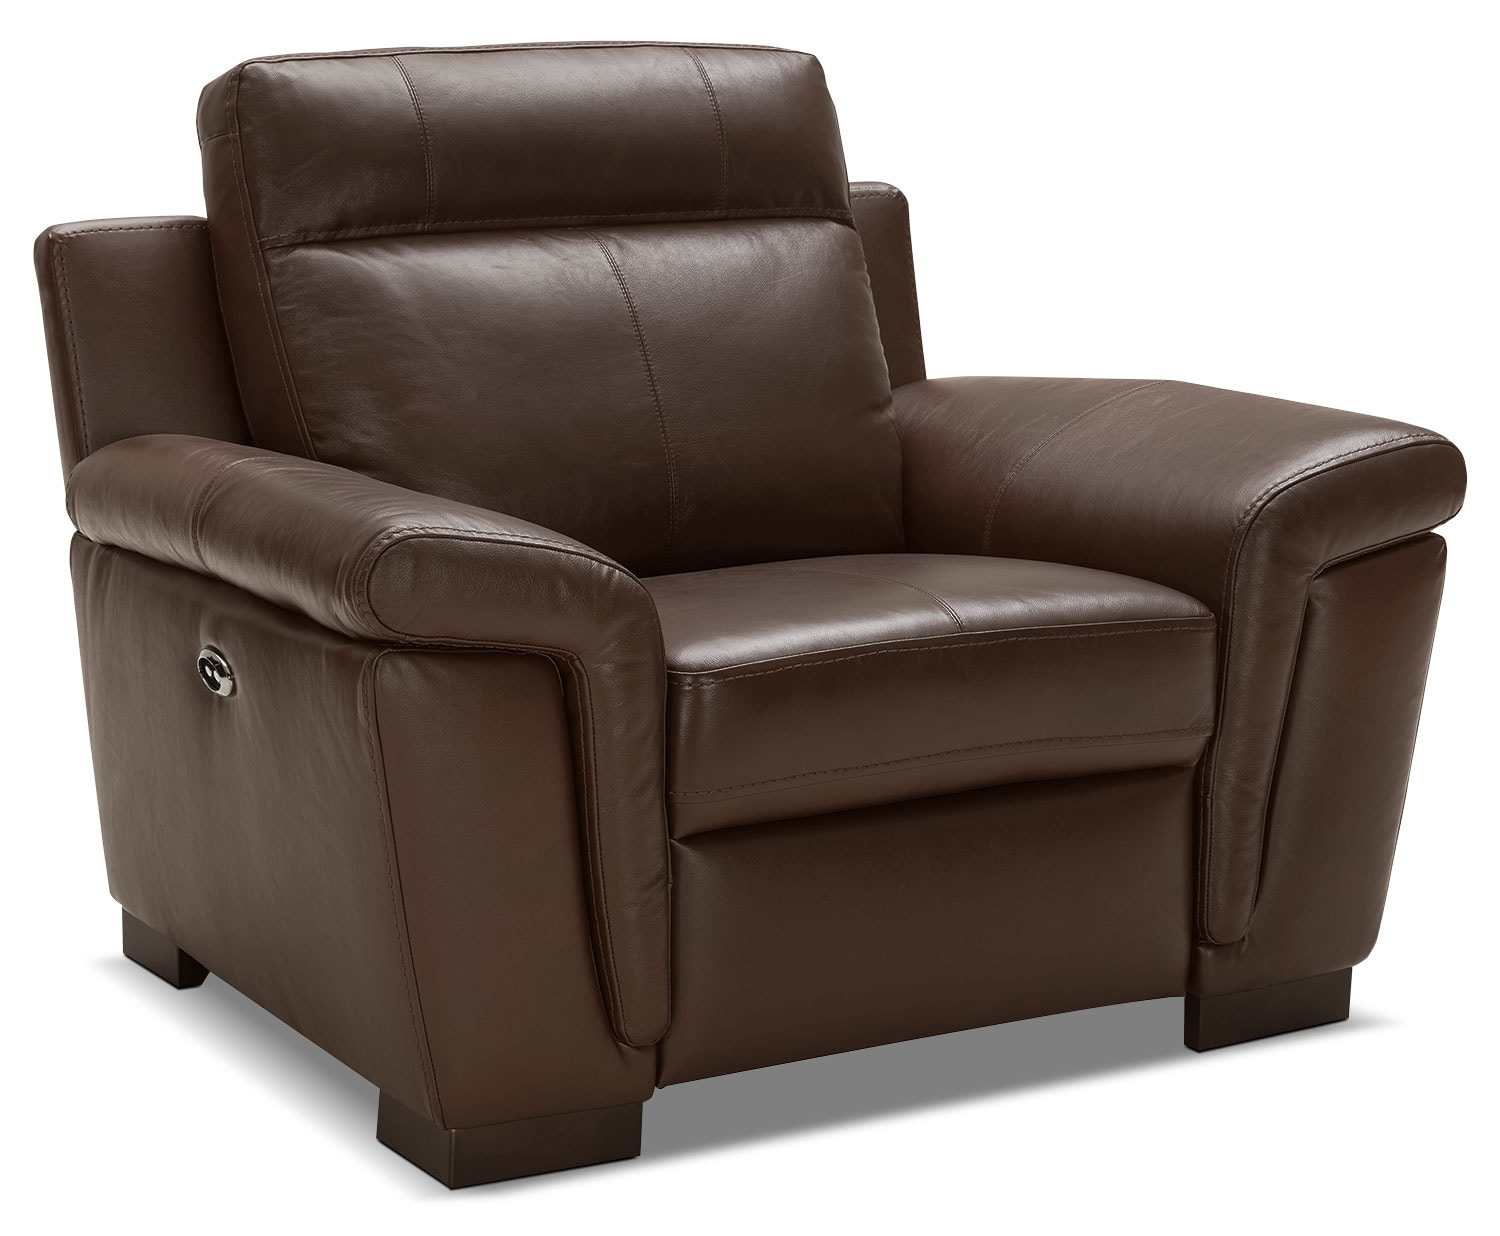 Real Leather Recliner Chairs Seth Genuine Leather Power Reclining Chair Mahogany